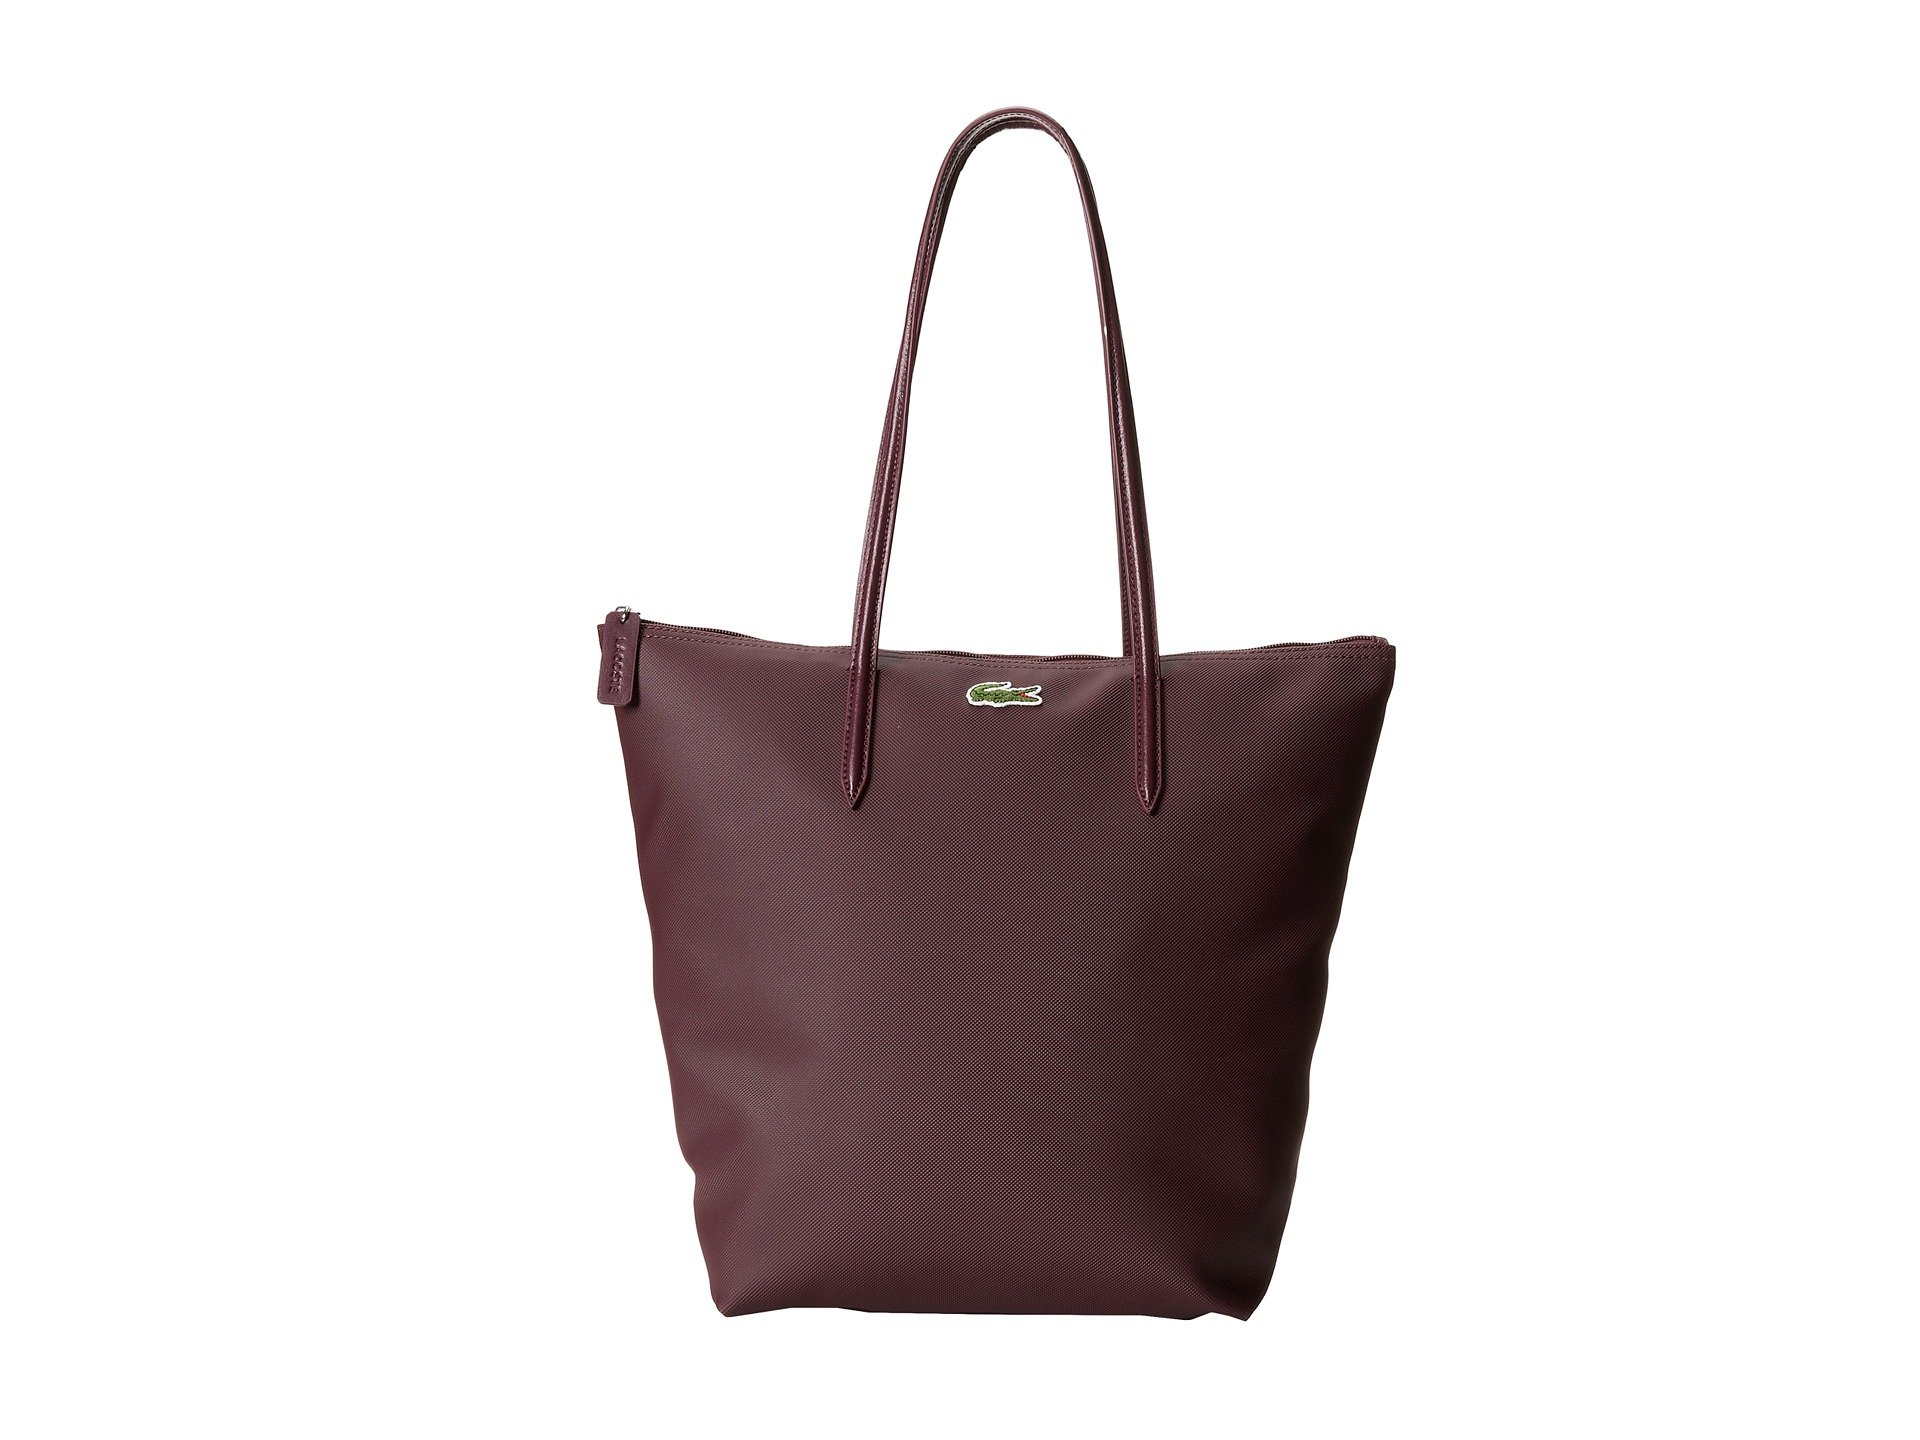 Lacoste L1212 Concept M1 Vertical Tote Bag In Brown